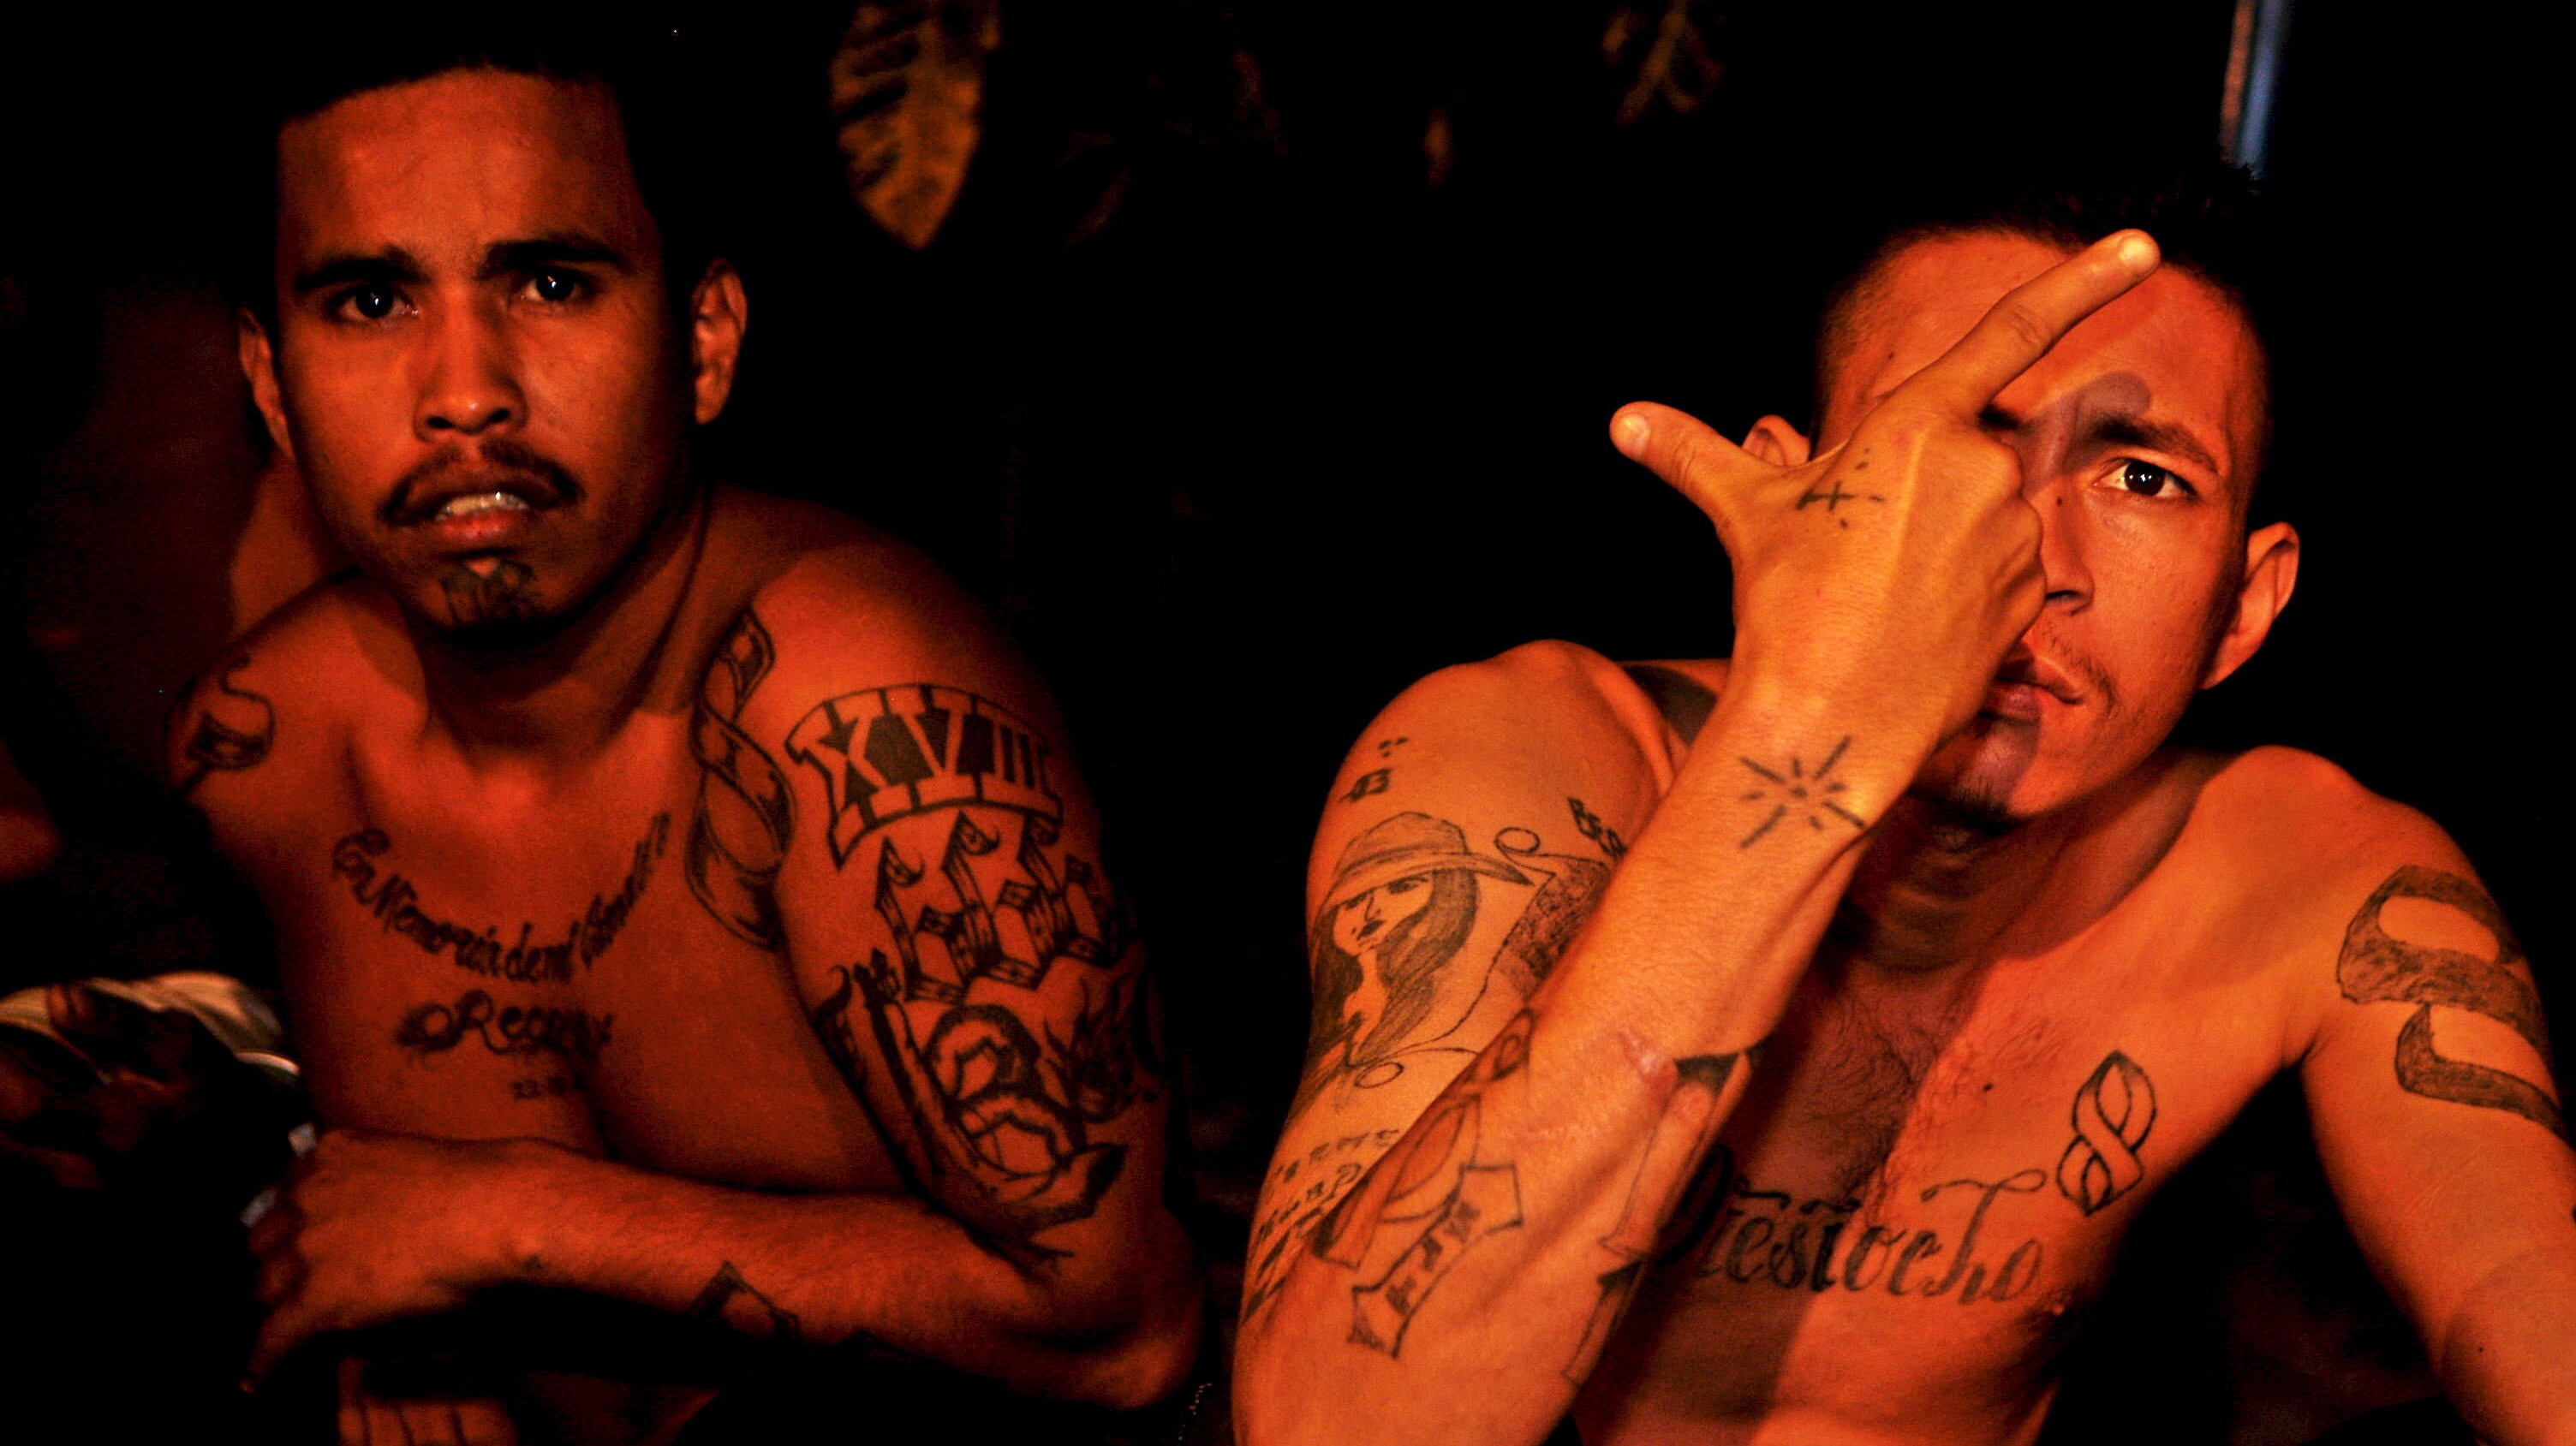 Are El Salvador's Murderous Gangs the Voice of the Oppressed? They Think So